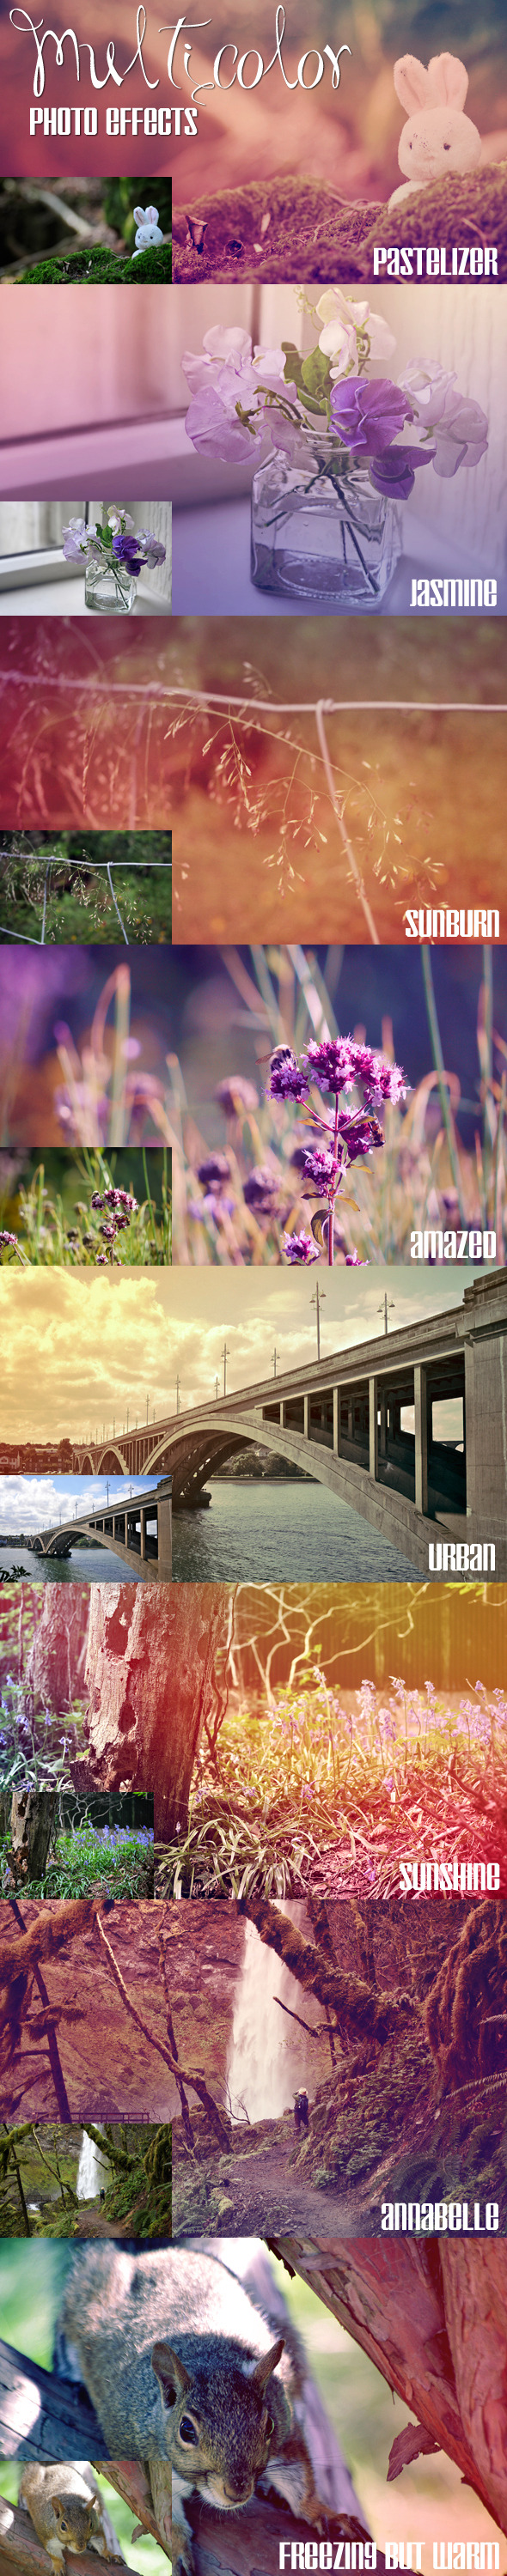 Multicolor Photo Effects - Photo Effects Actions